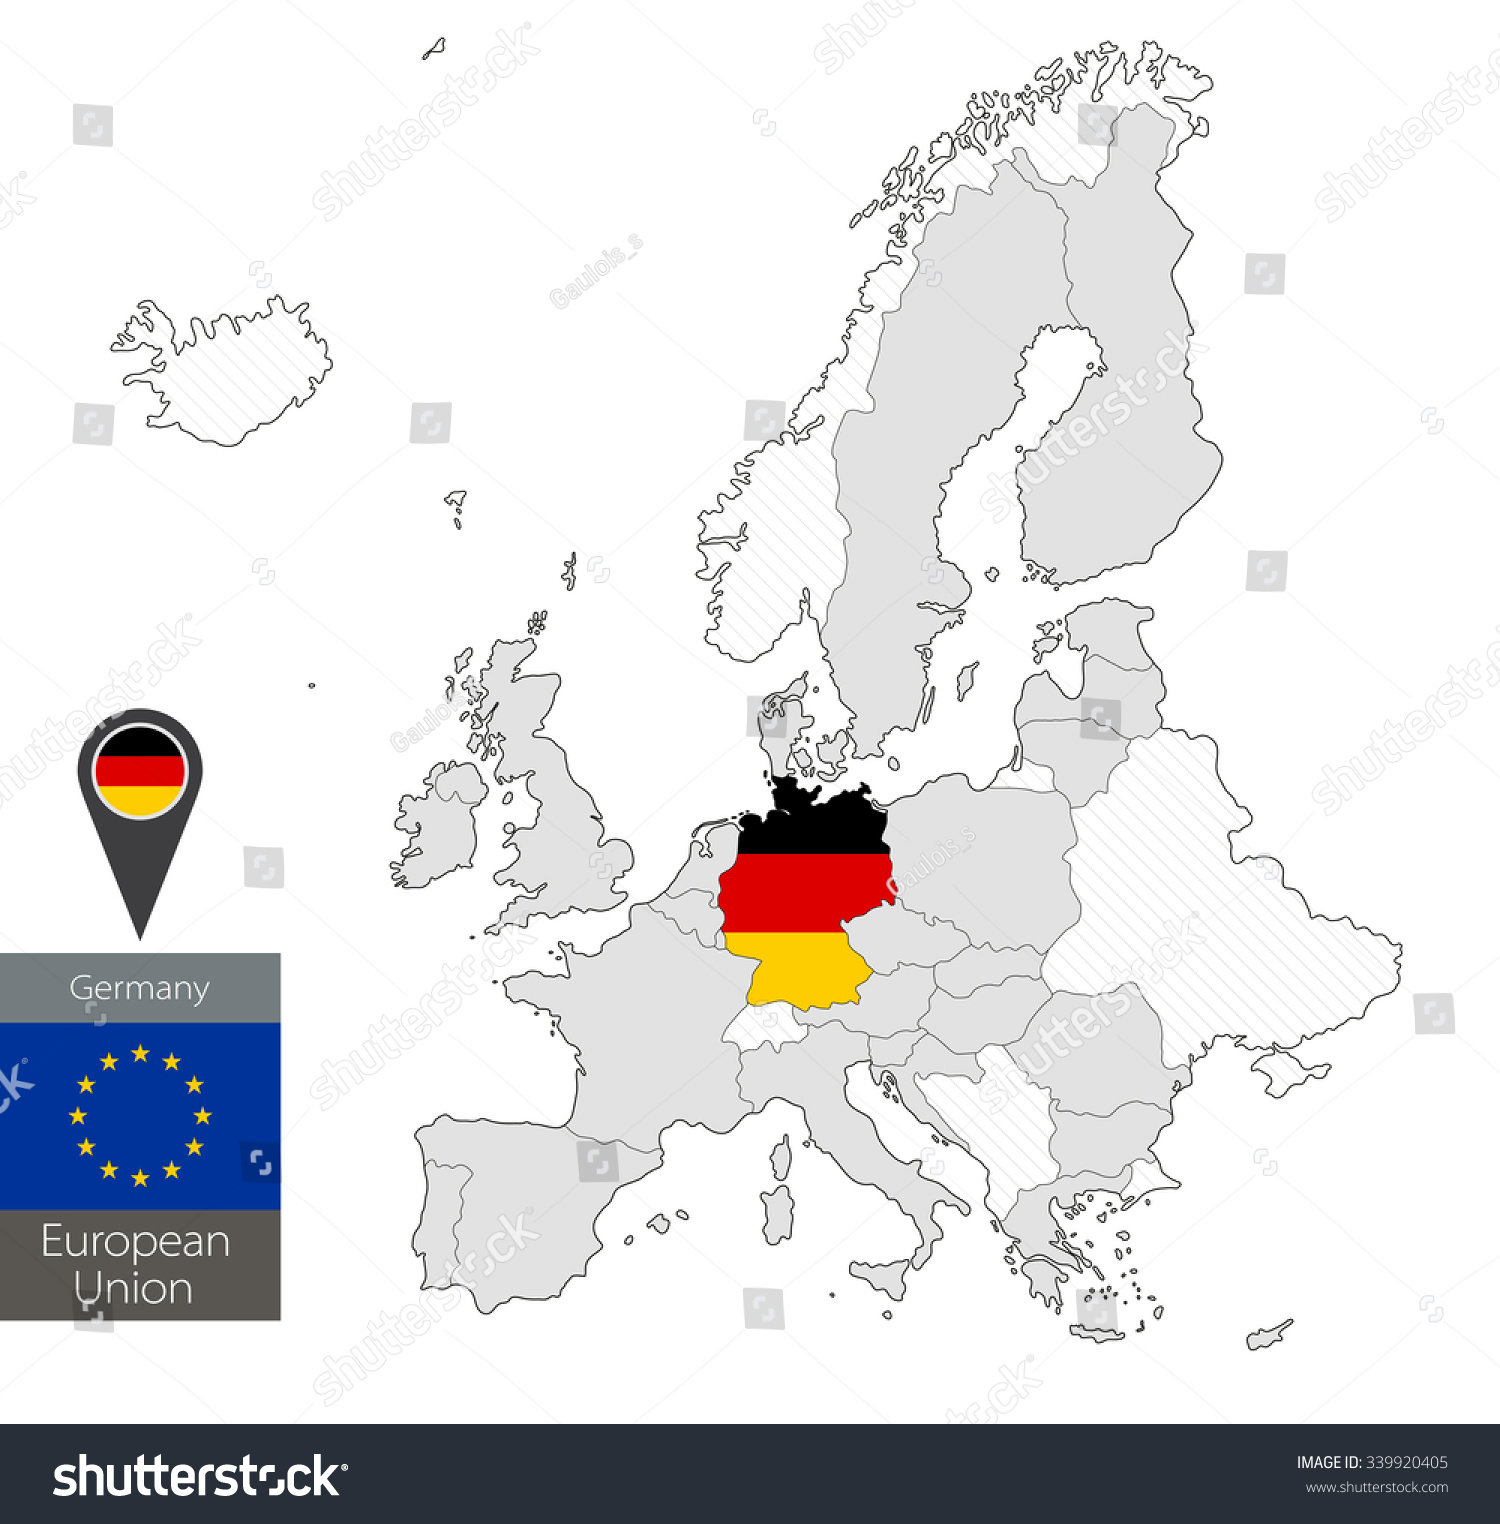 Germany Location On The World Florida Map Of Cities - Germany map location